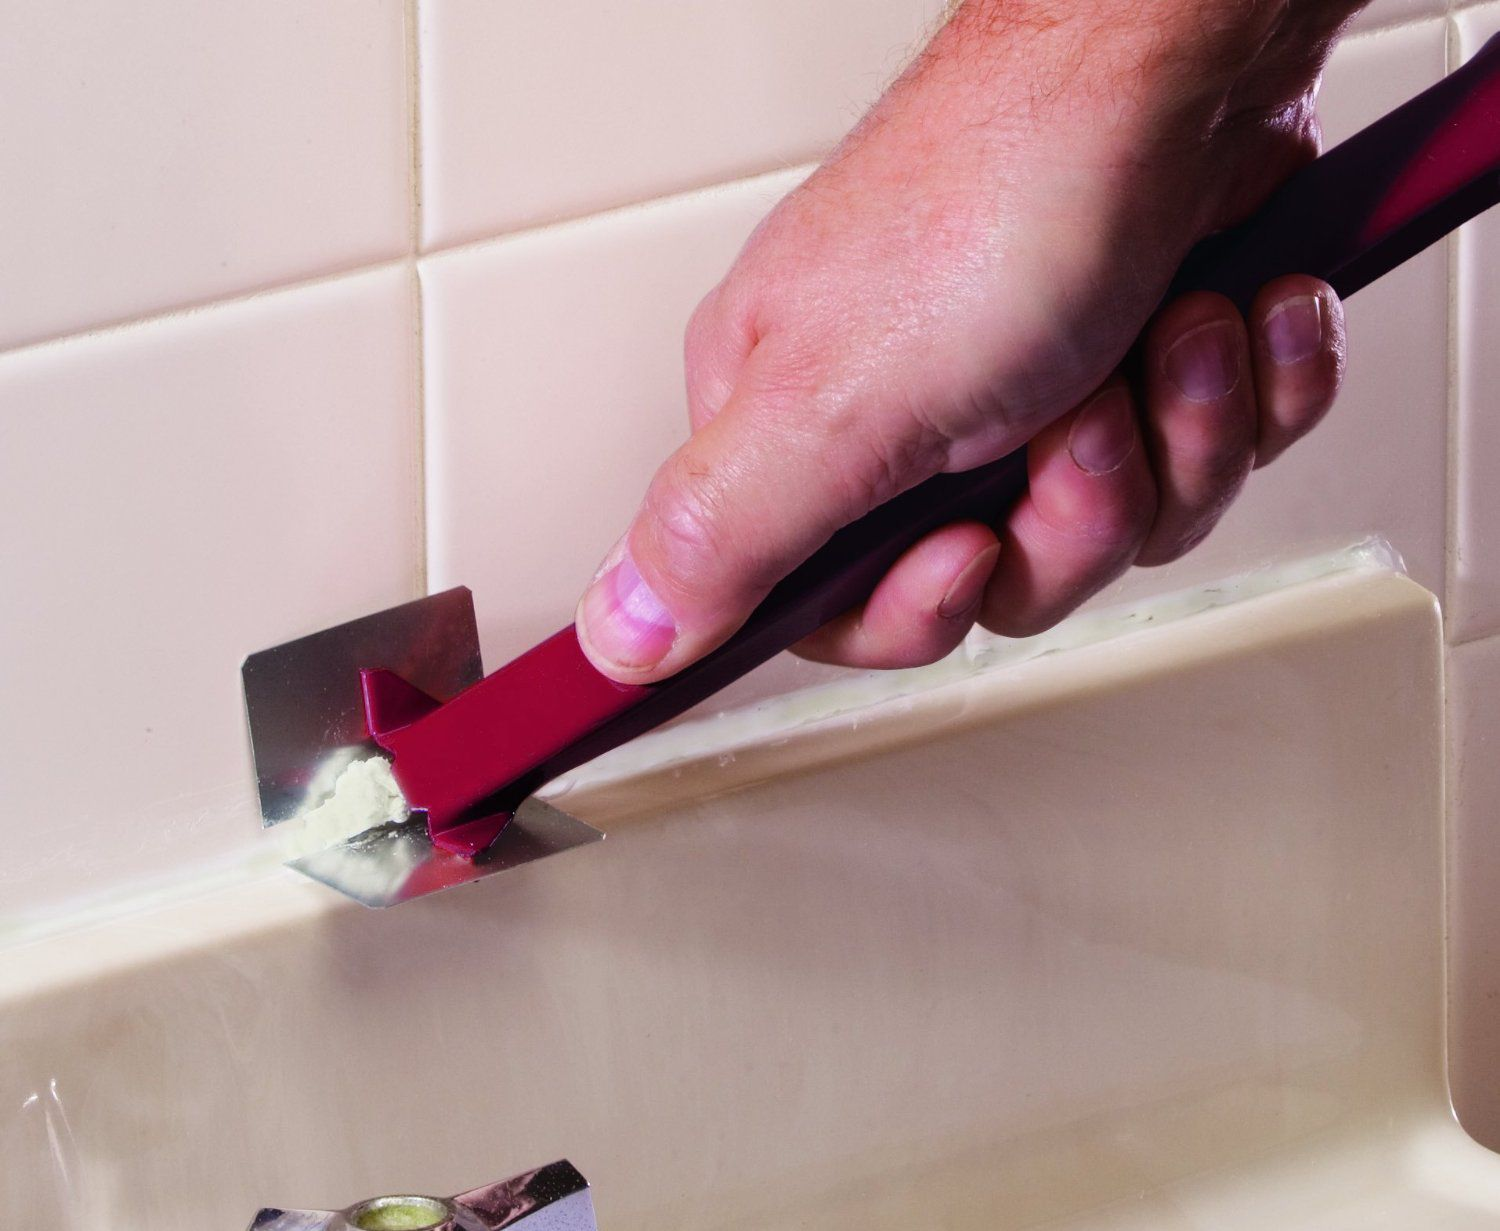 How to Remove Old Caulk From Your Bathtub or Sink